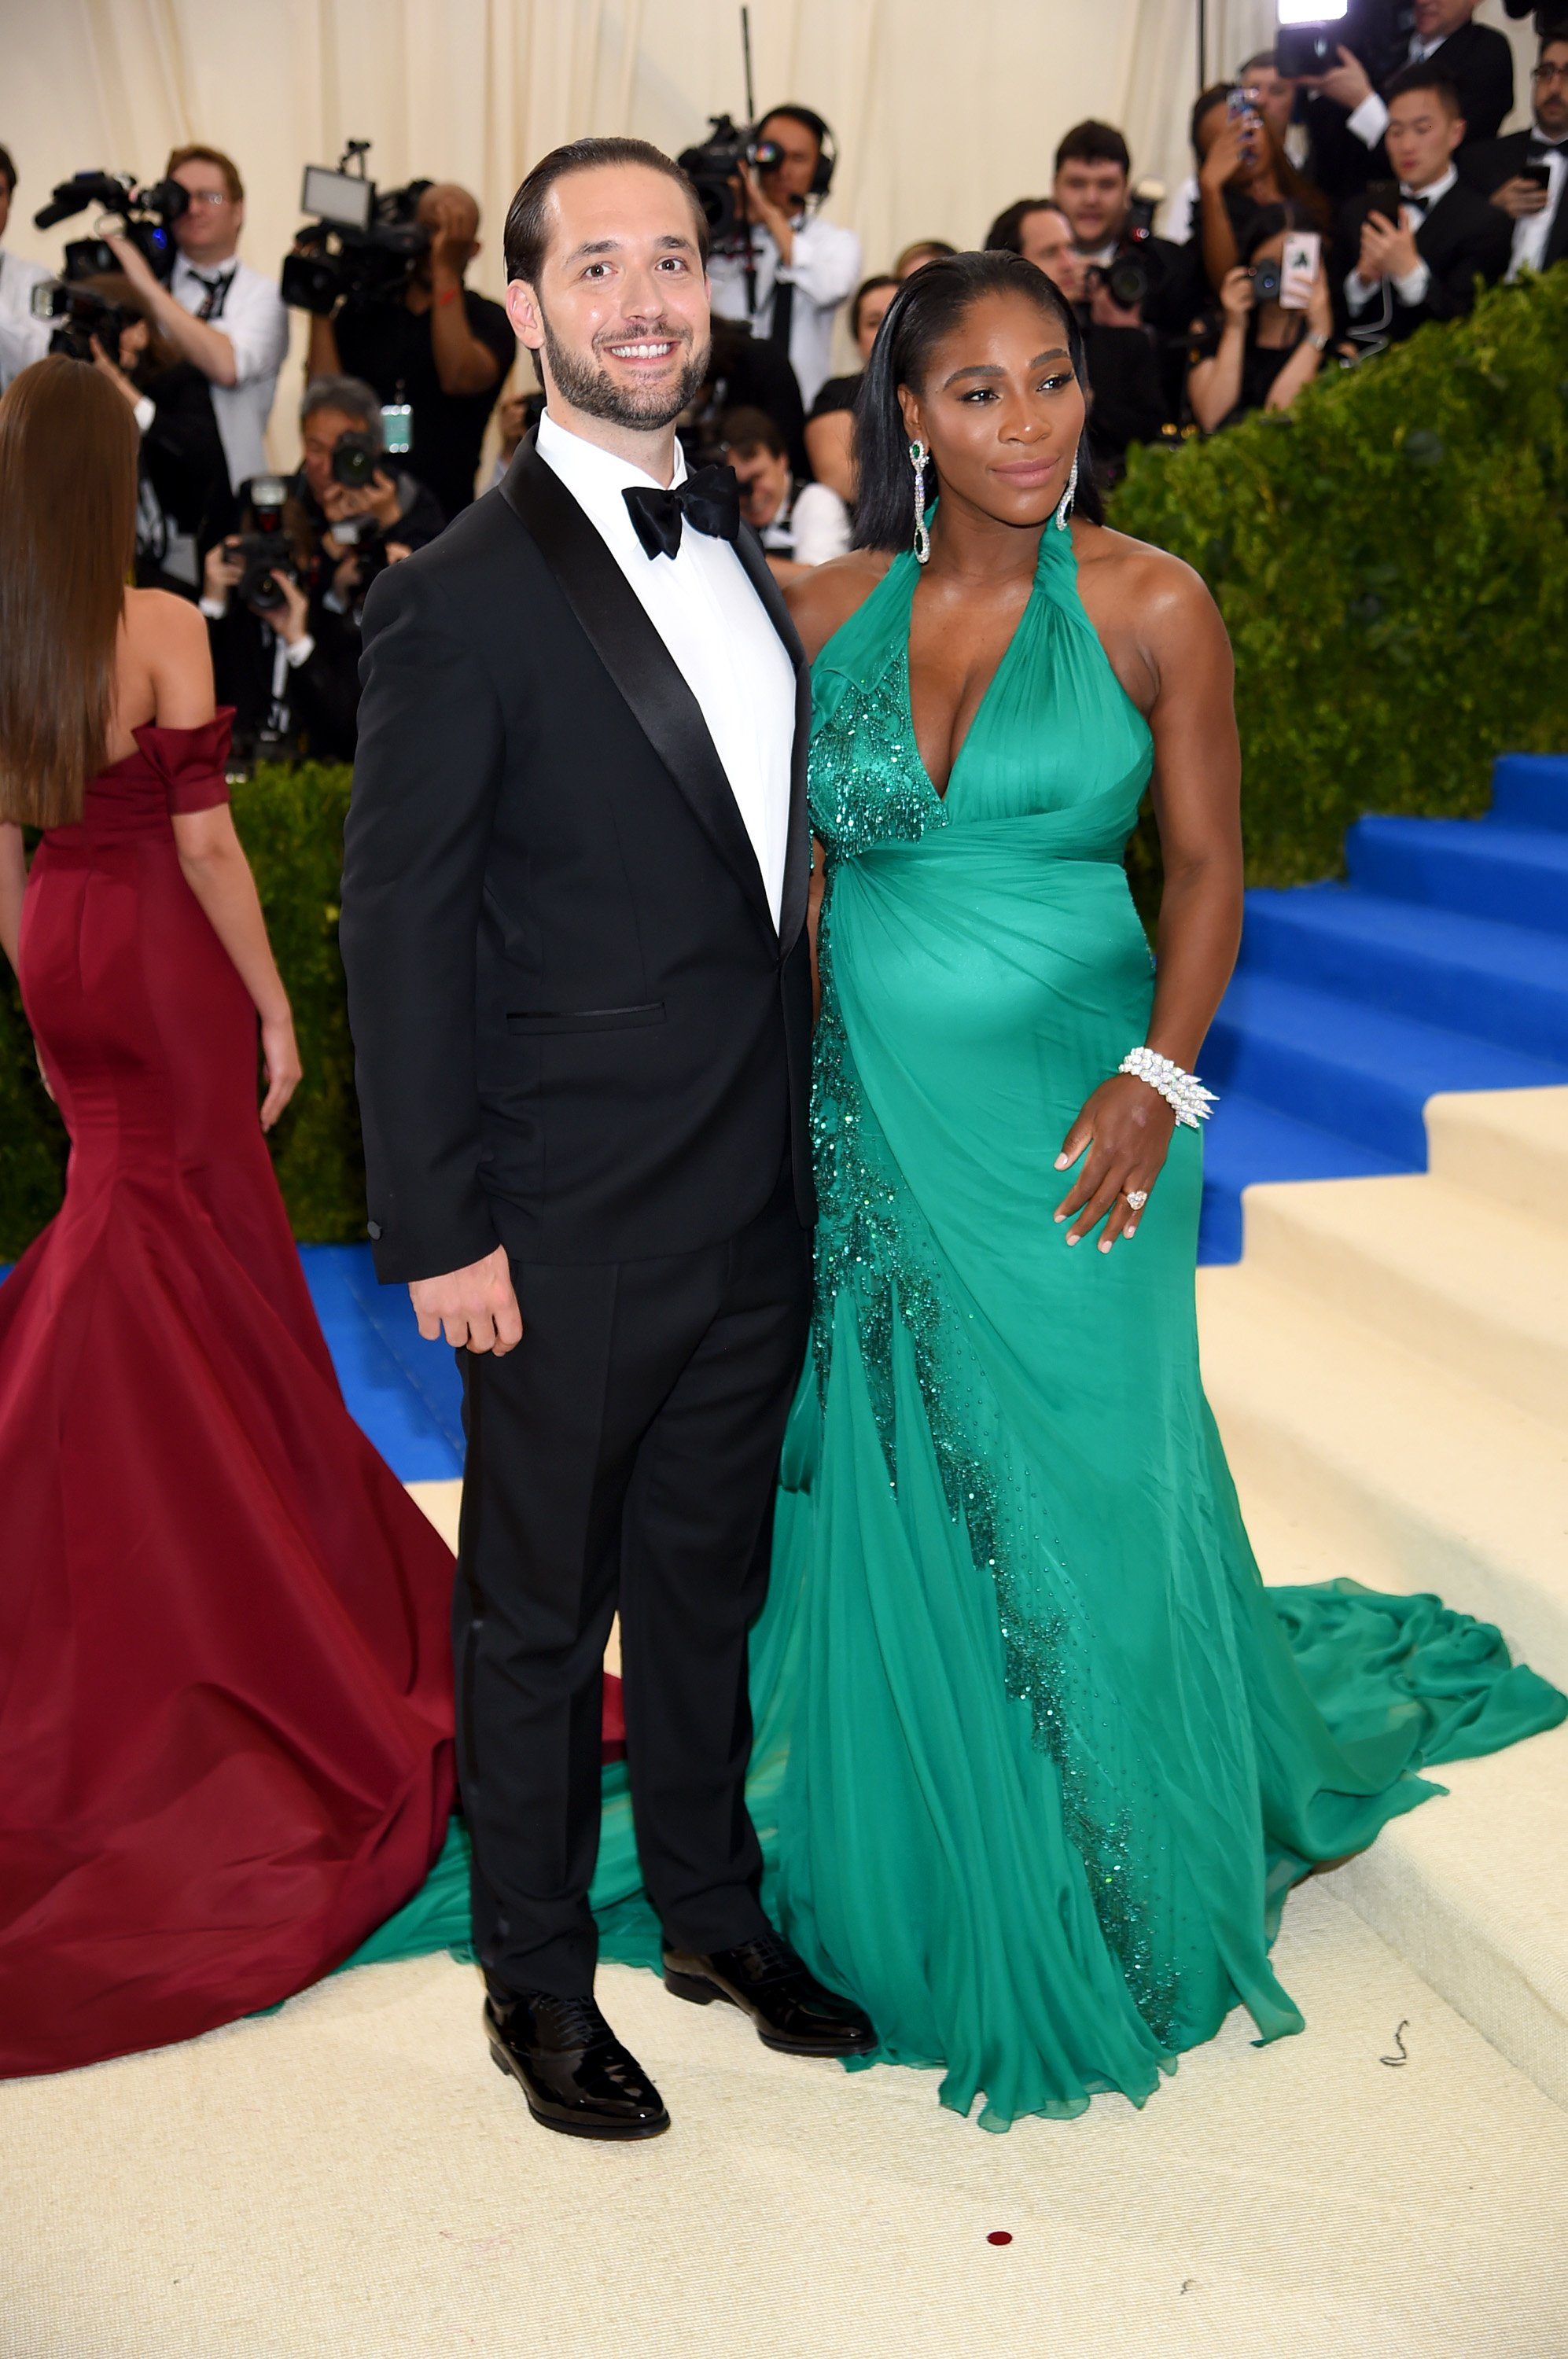 Serena Williams and her husband Alexis Ohanian during the Met Gala. | Source: Getty Images